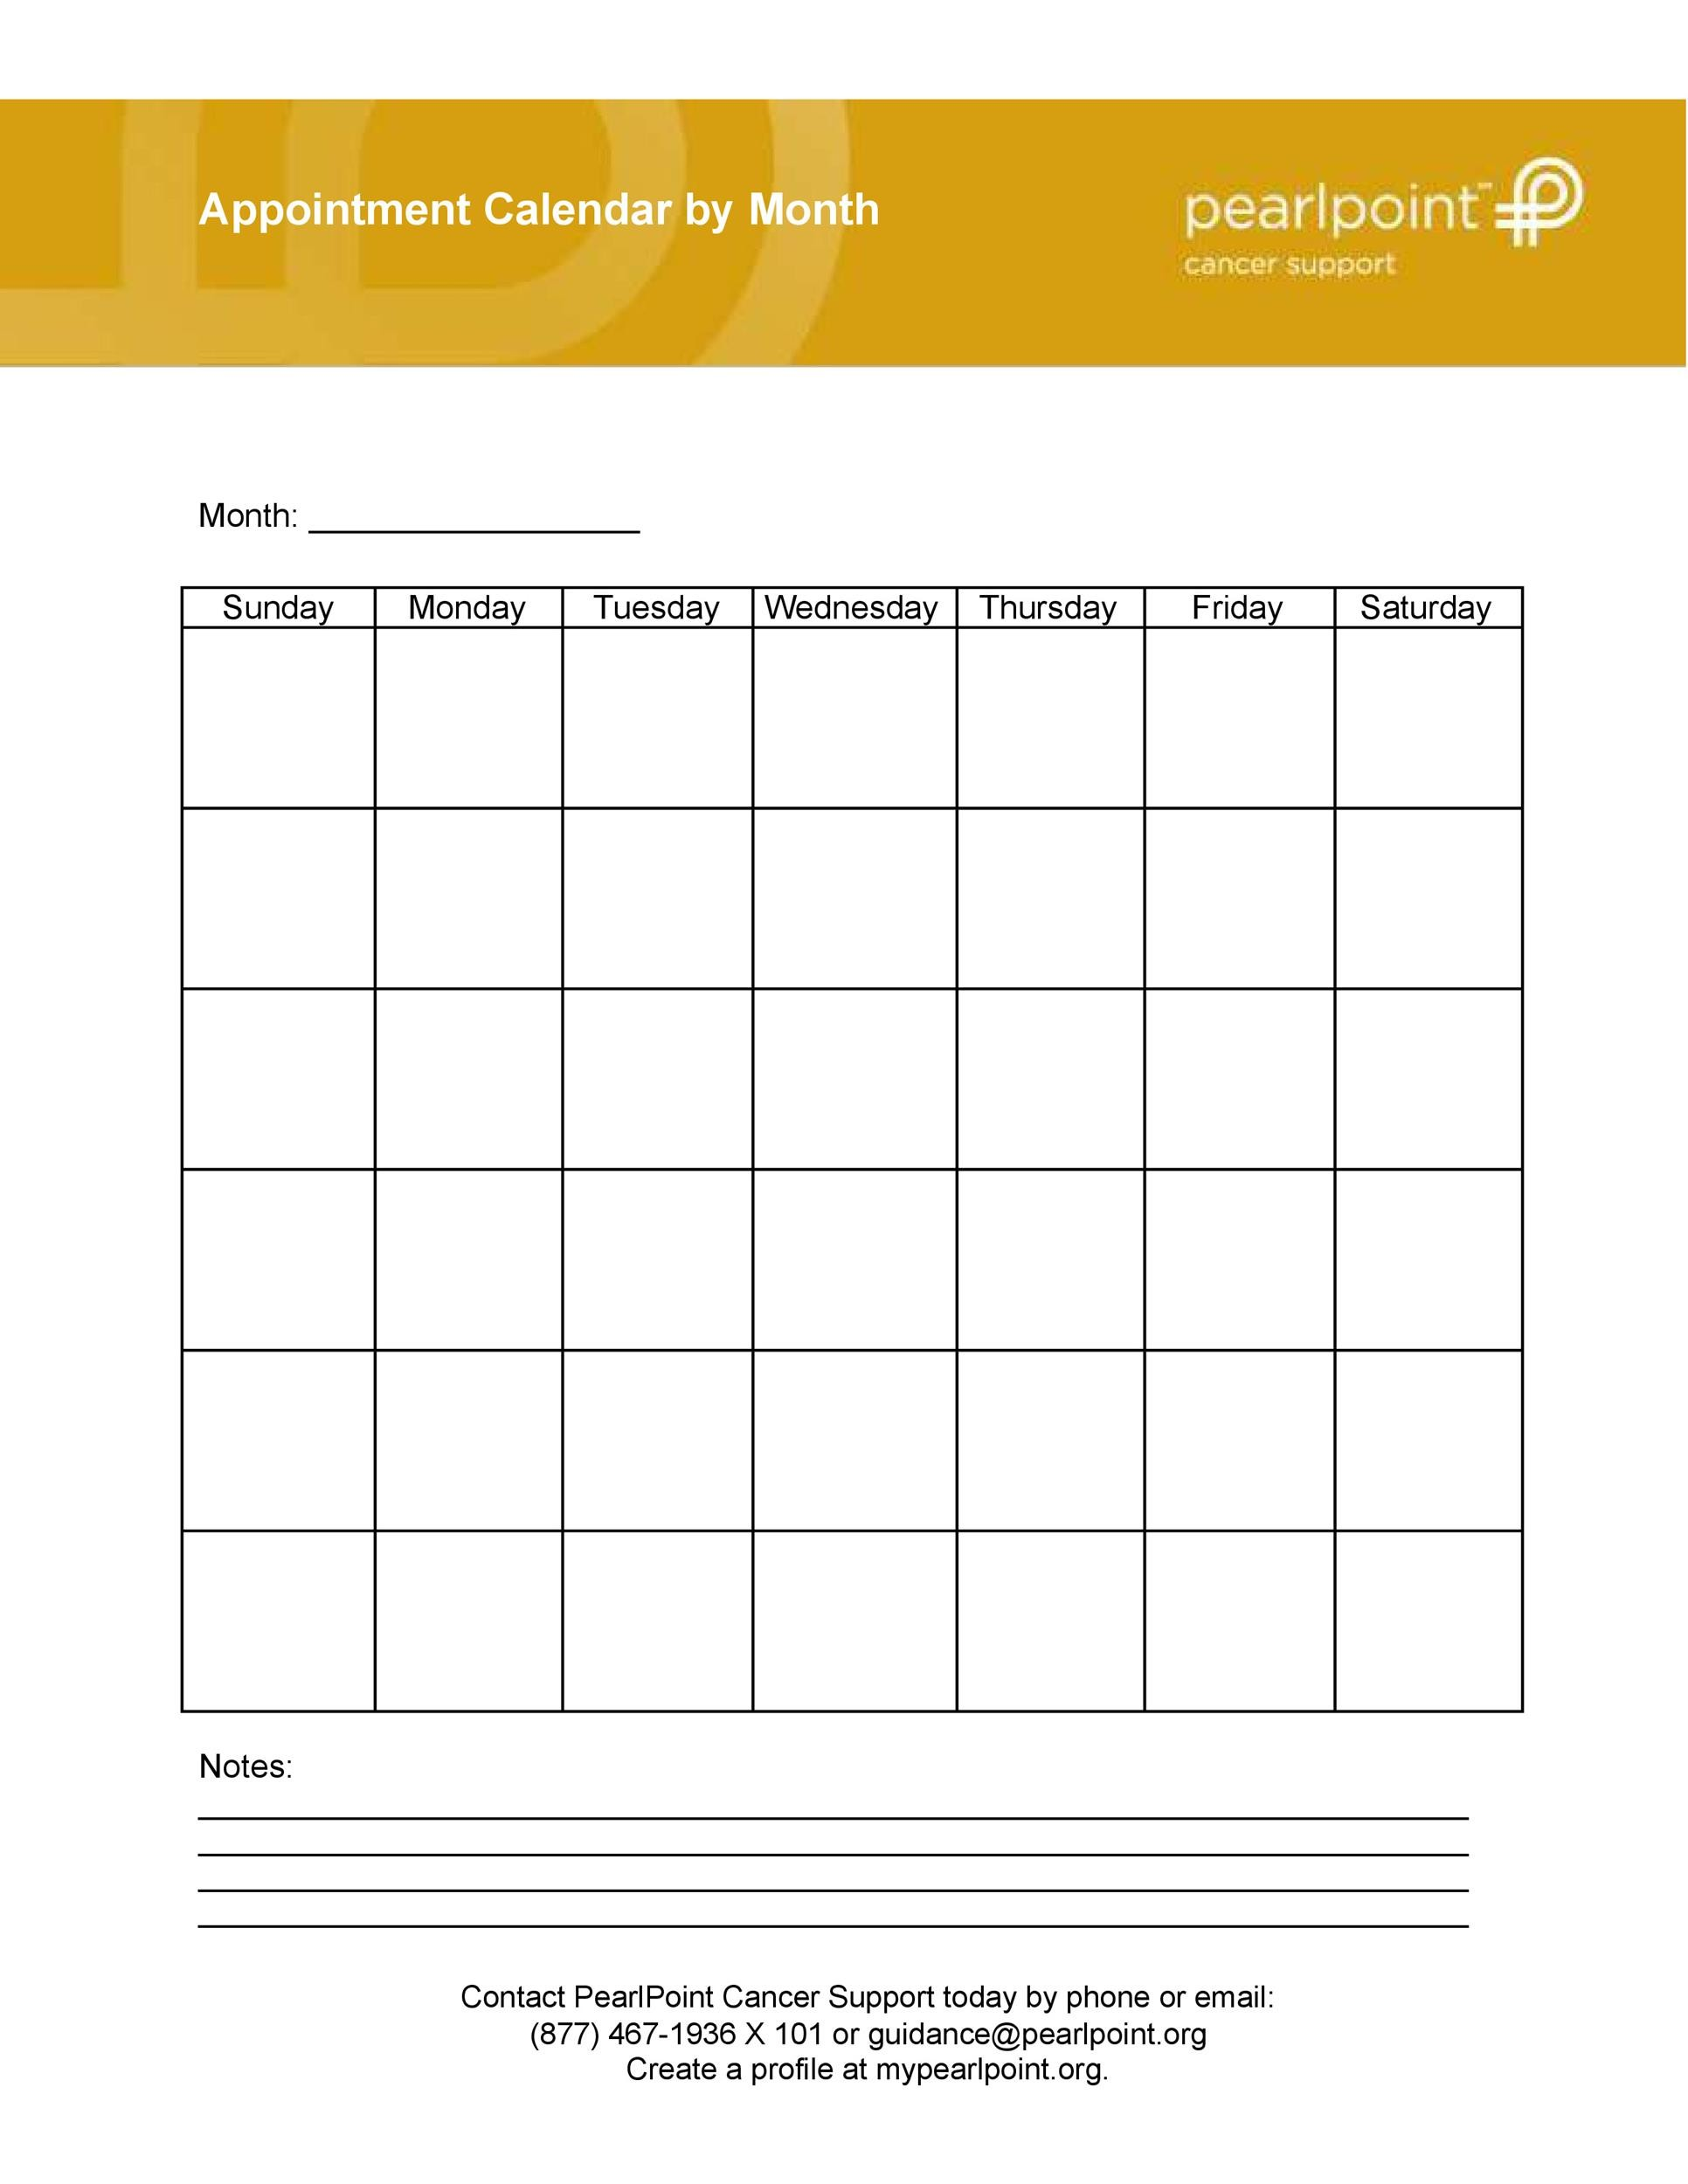 Free appointment schedule template 03